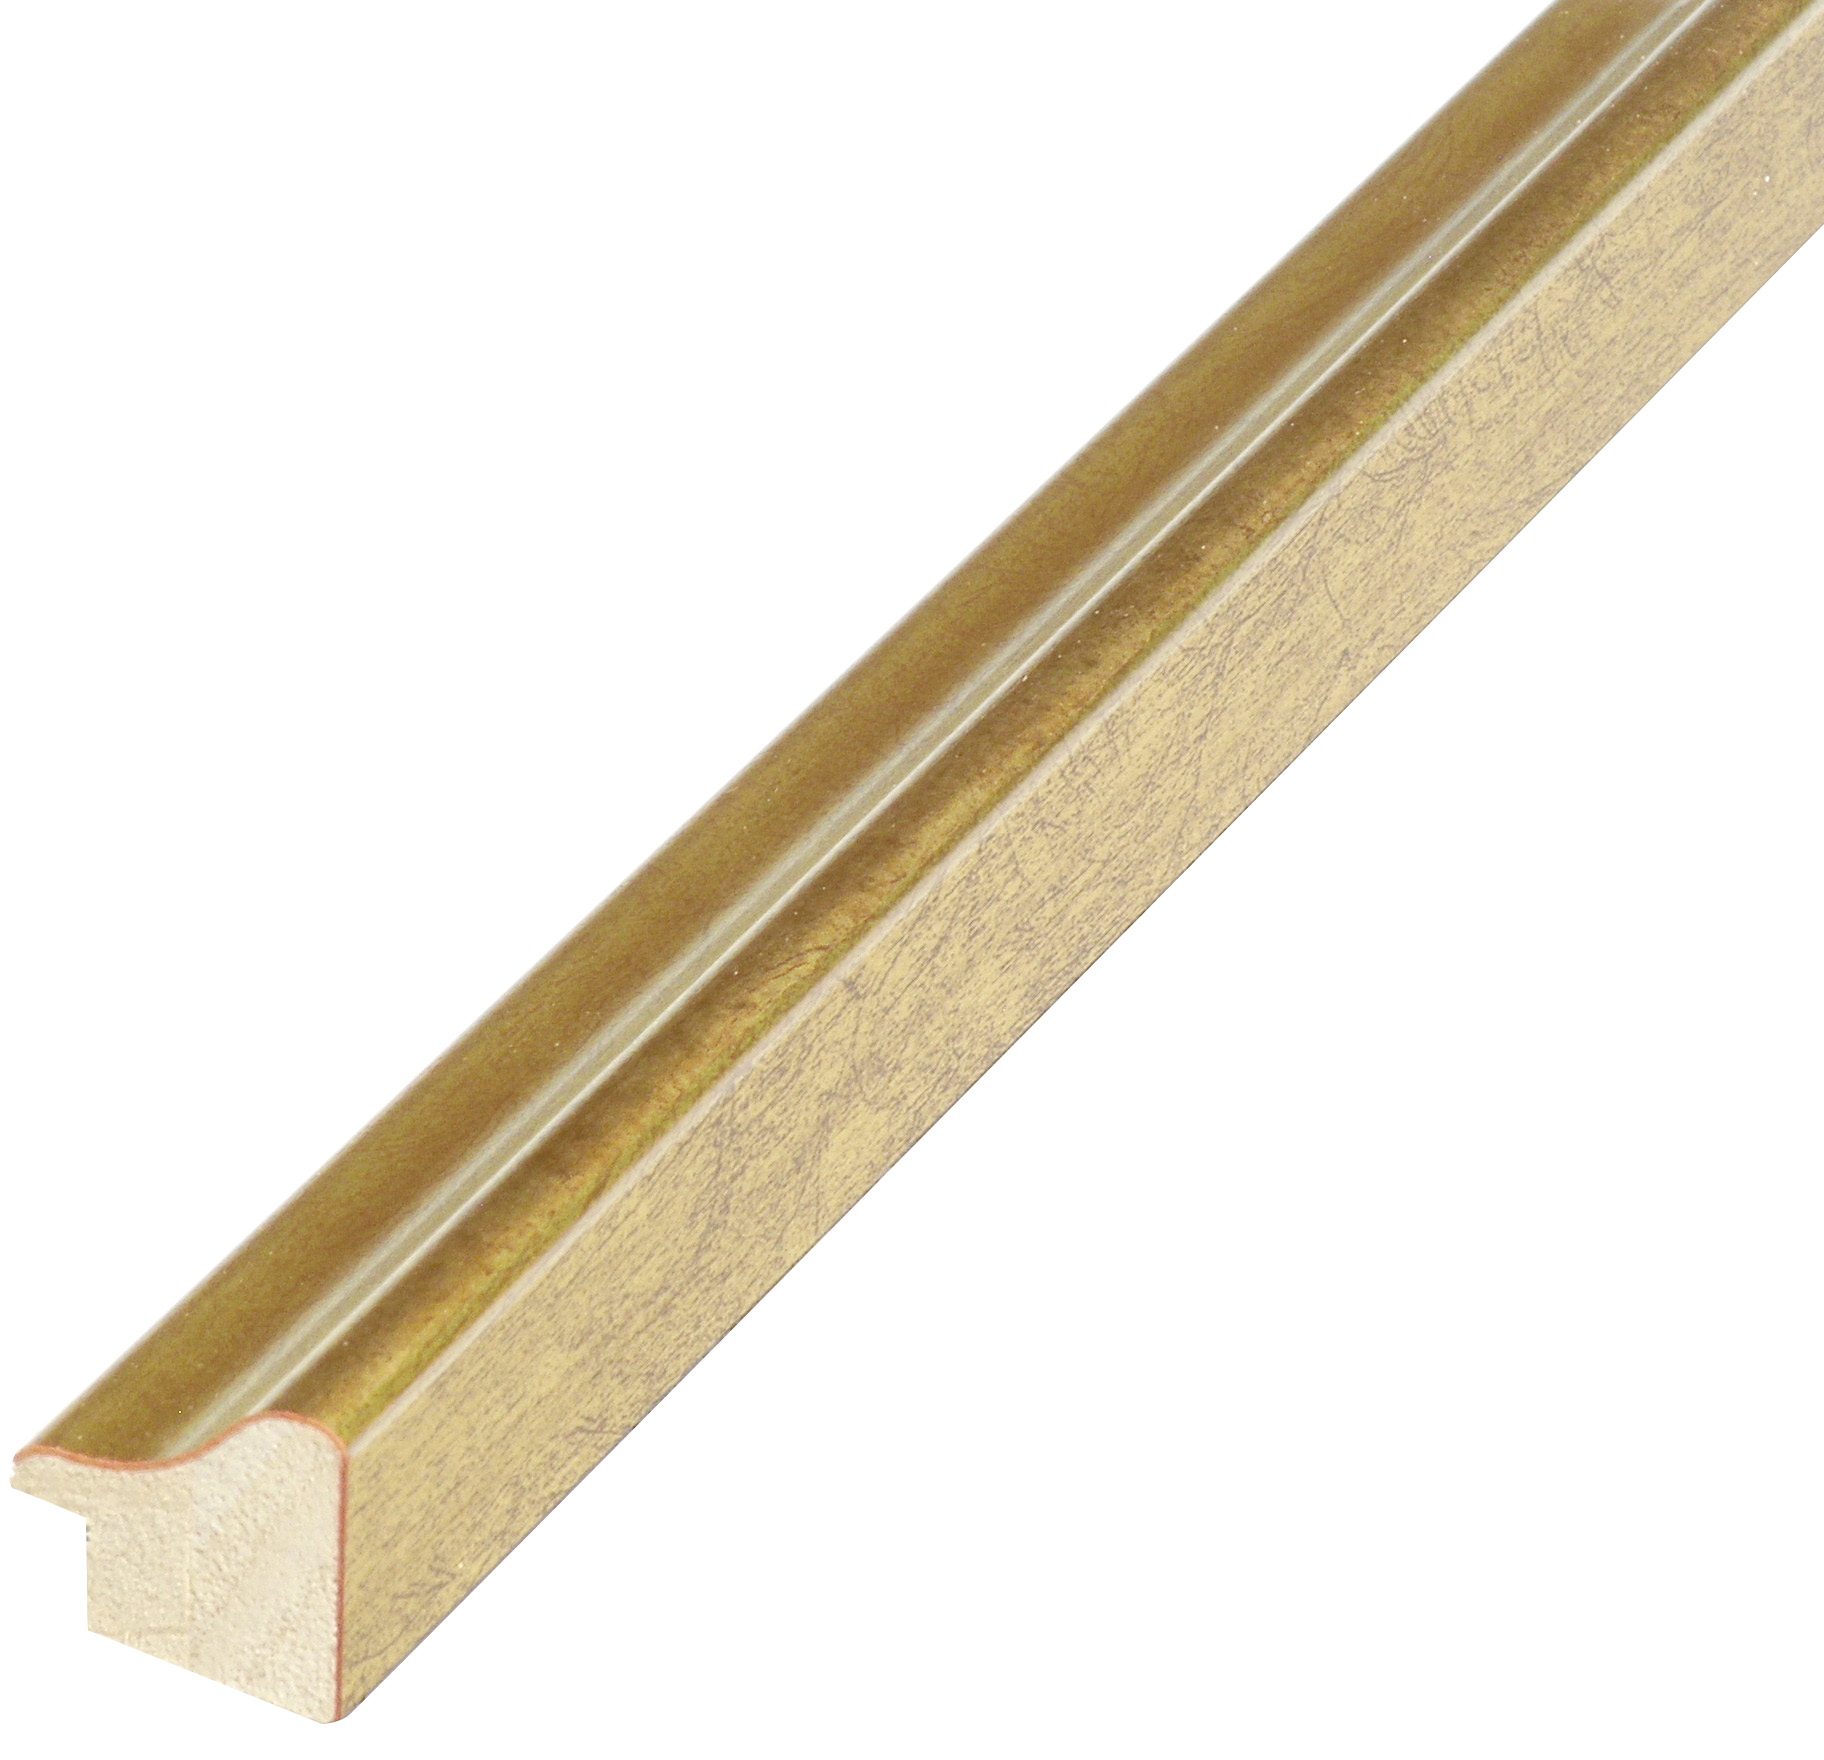 Moulding ayous, width 23mm height 22 - gold finish